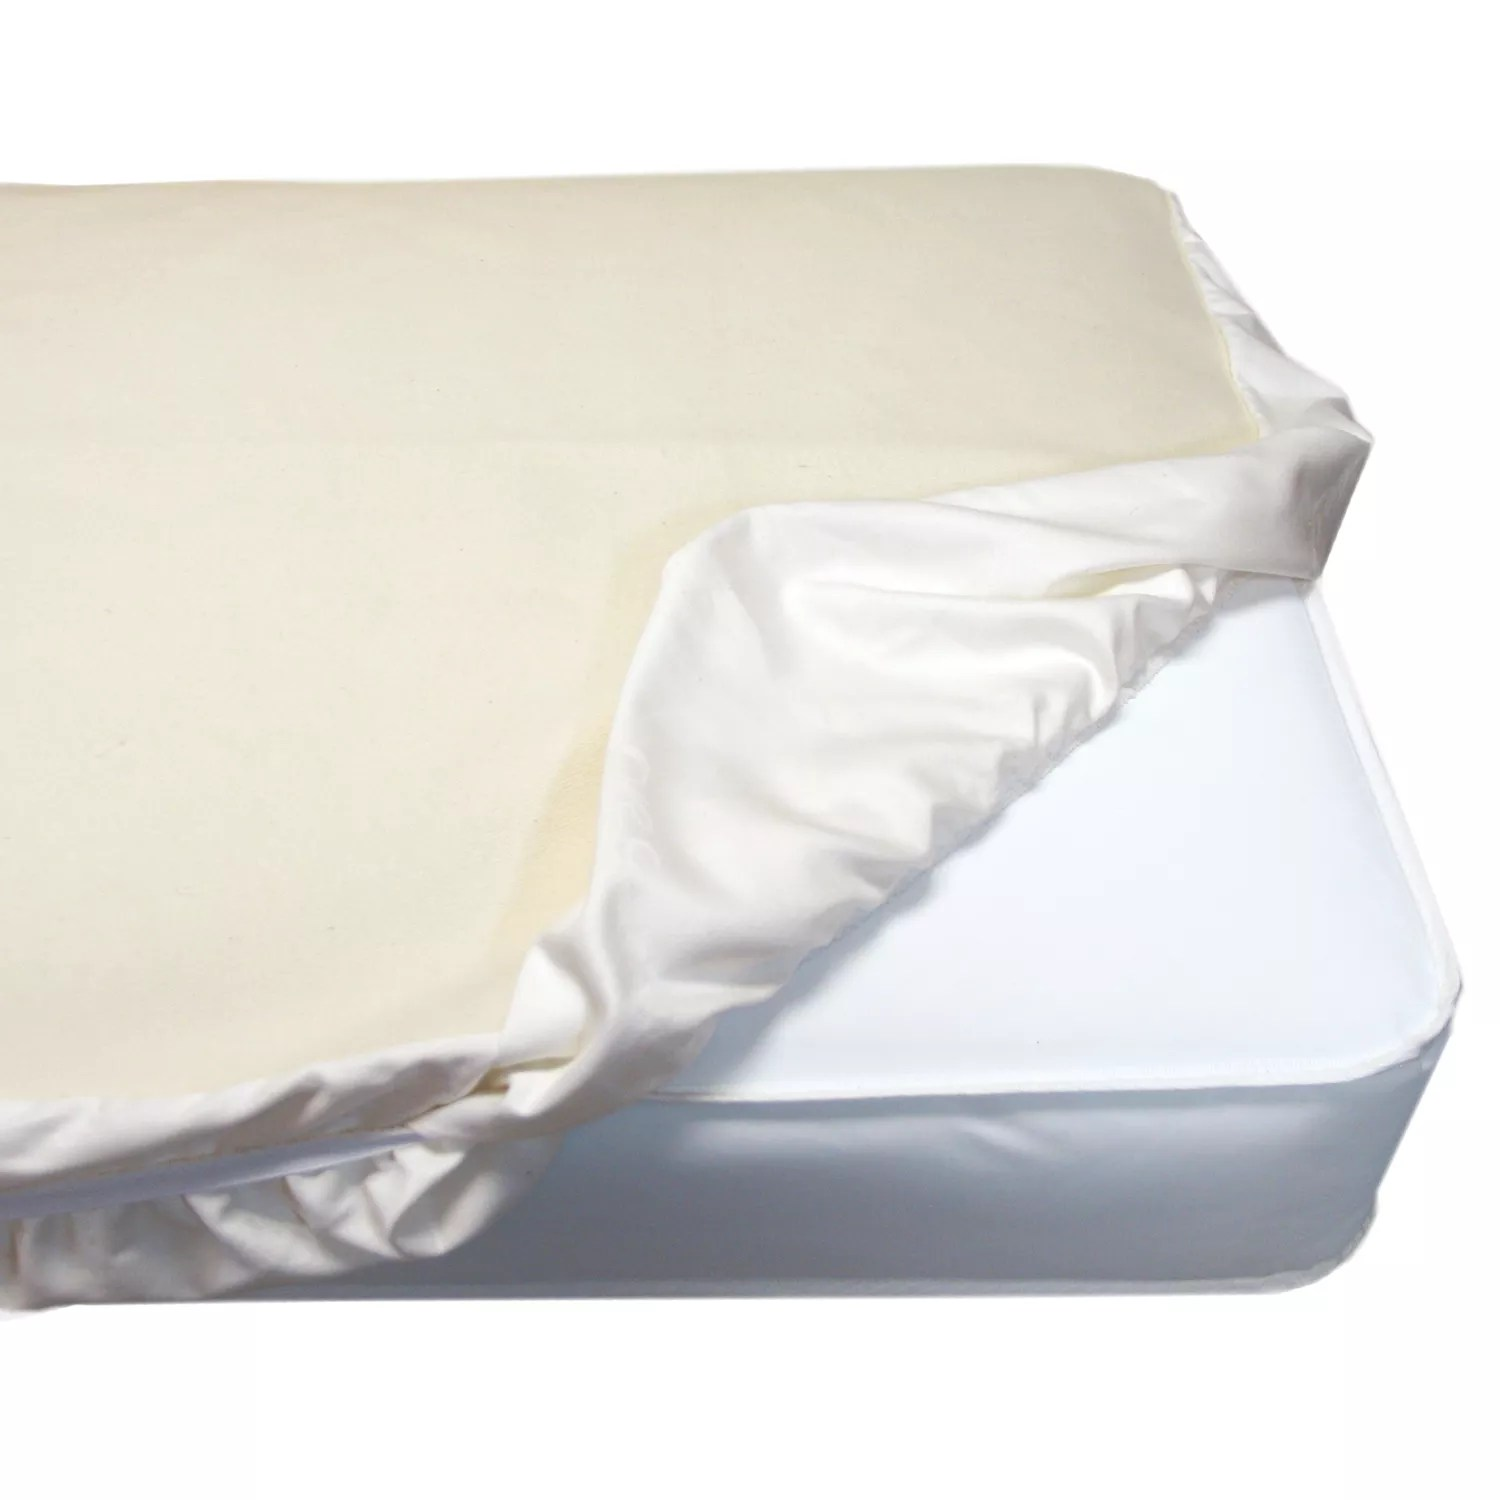 Comfy Mattress Naturepedic Organic Cotton Crib Mattress Fitted Protector Pad